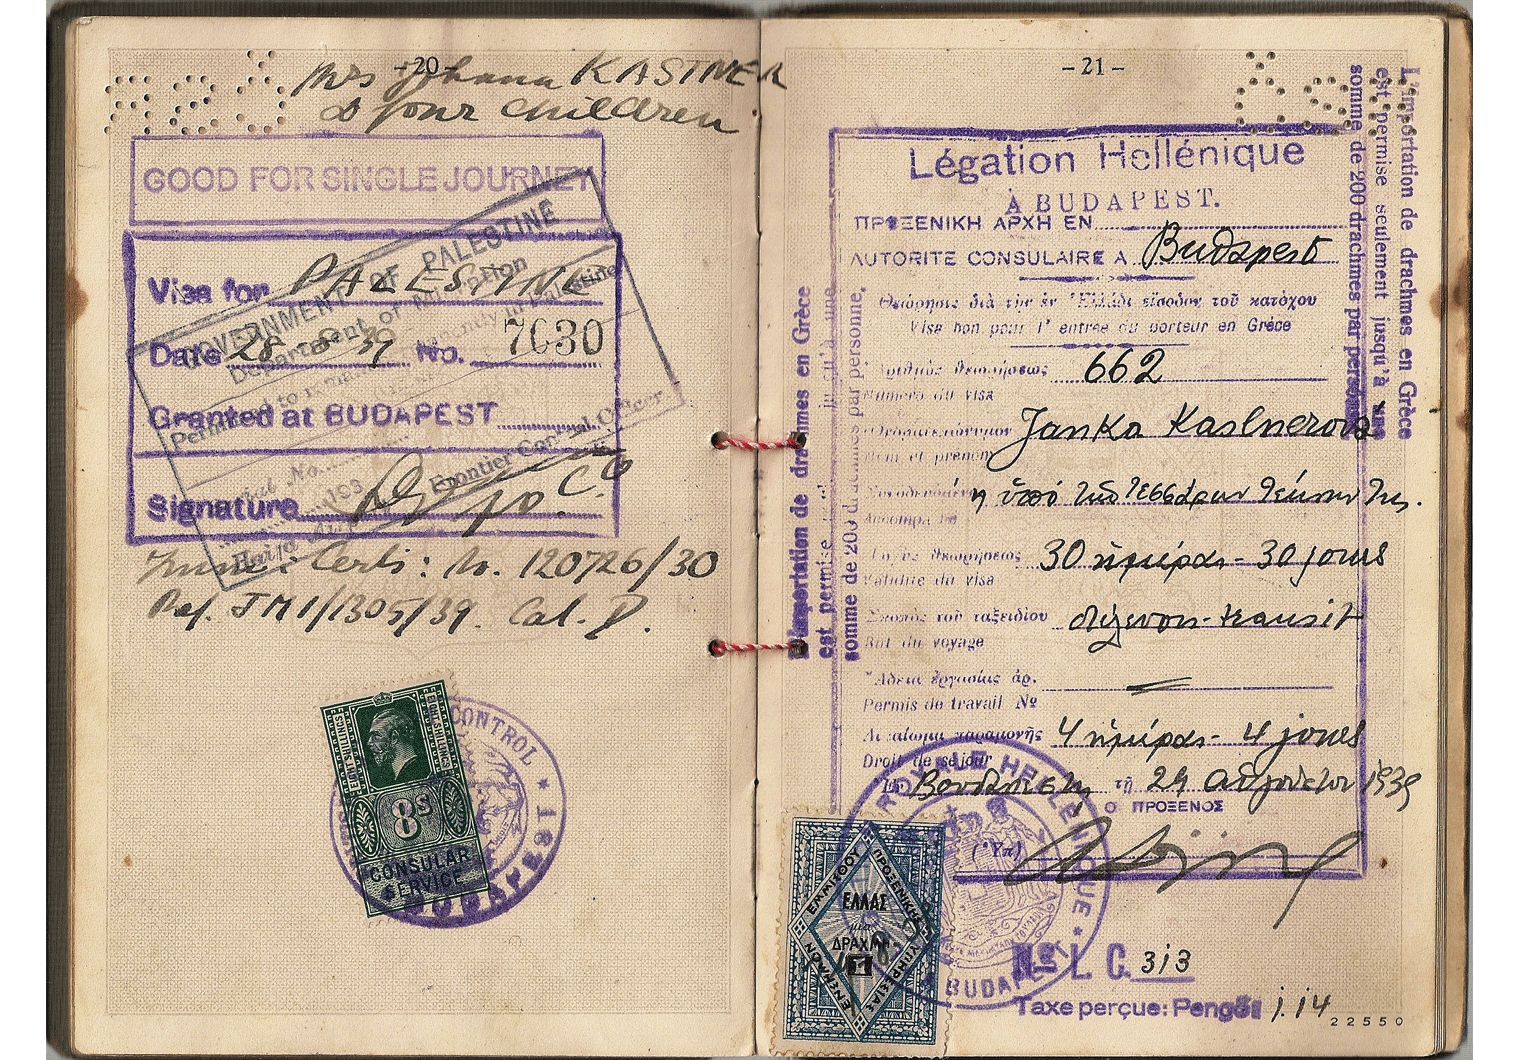 WW2 British Palestine visa